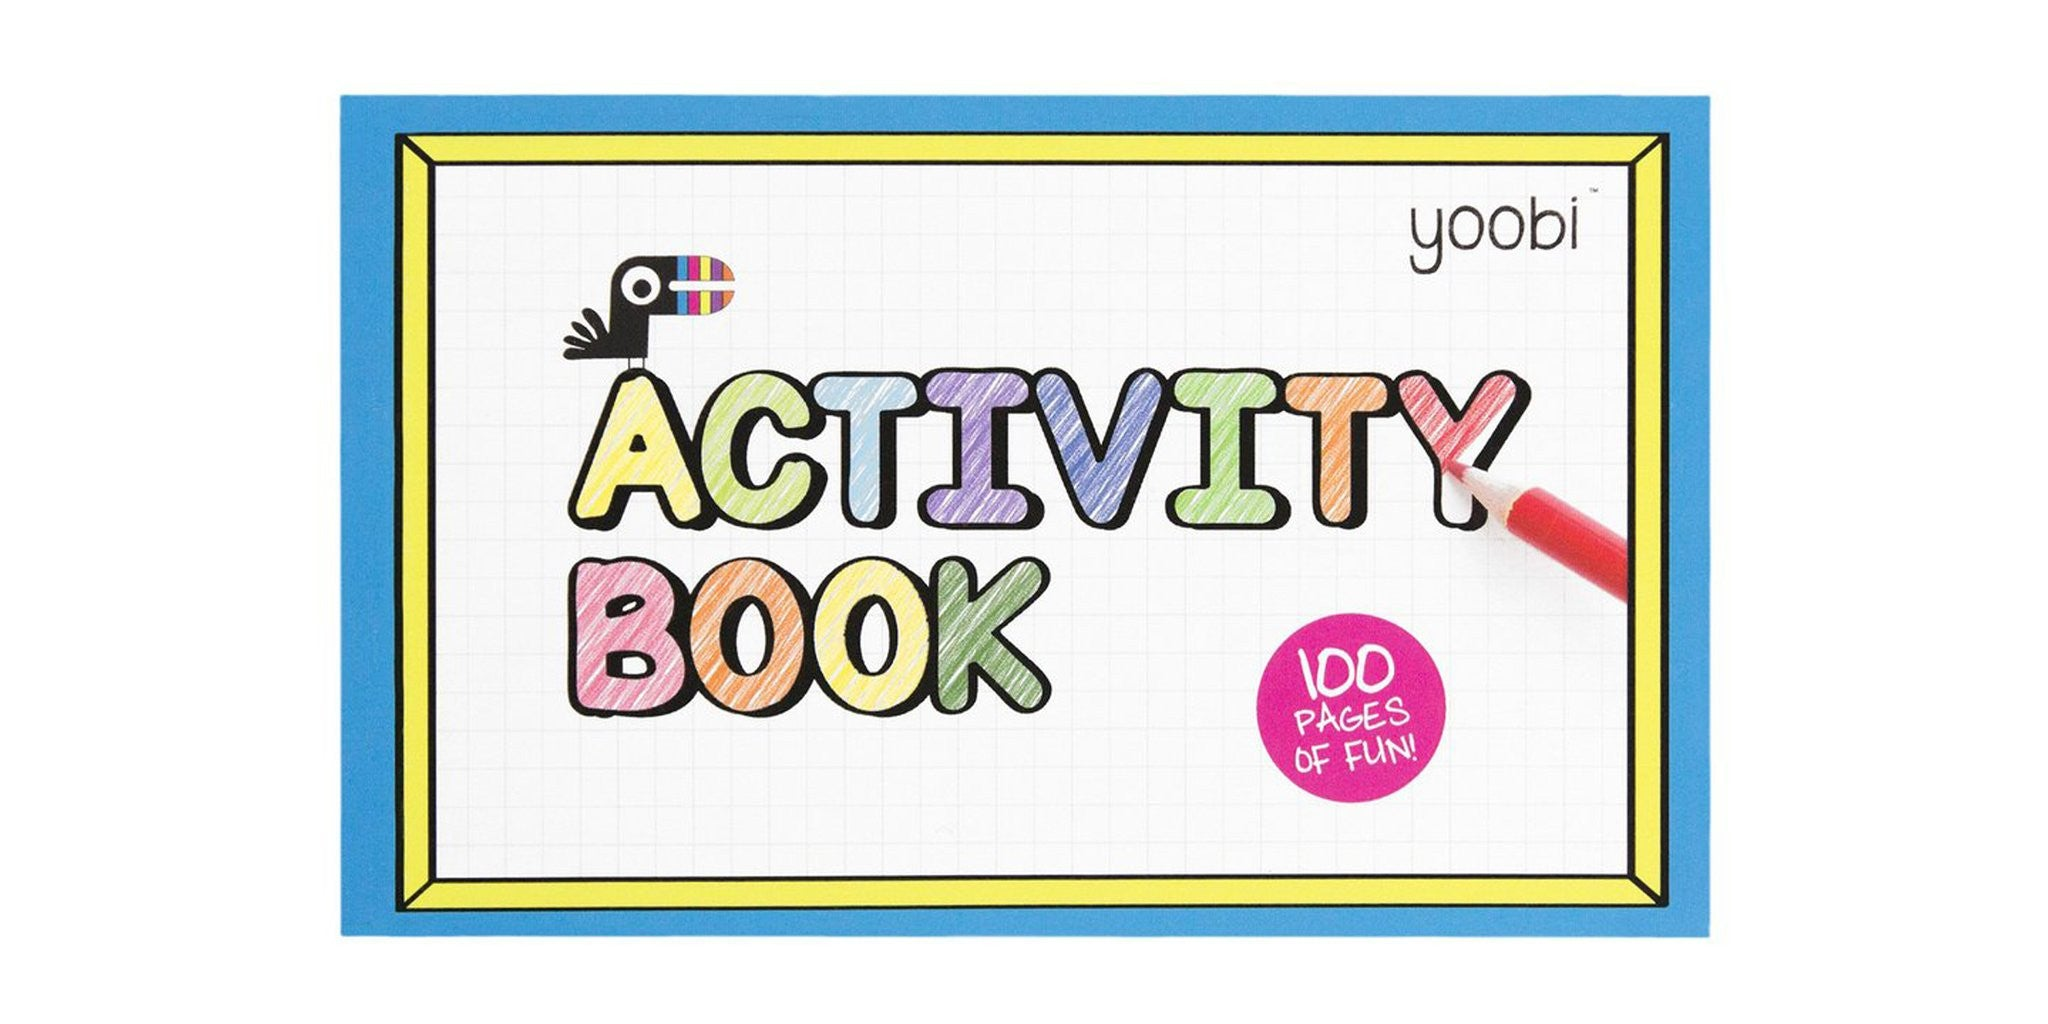 Introducing: Yoobi's Activity Book